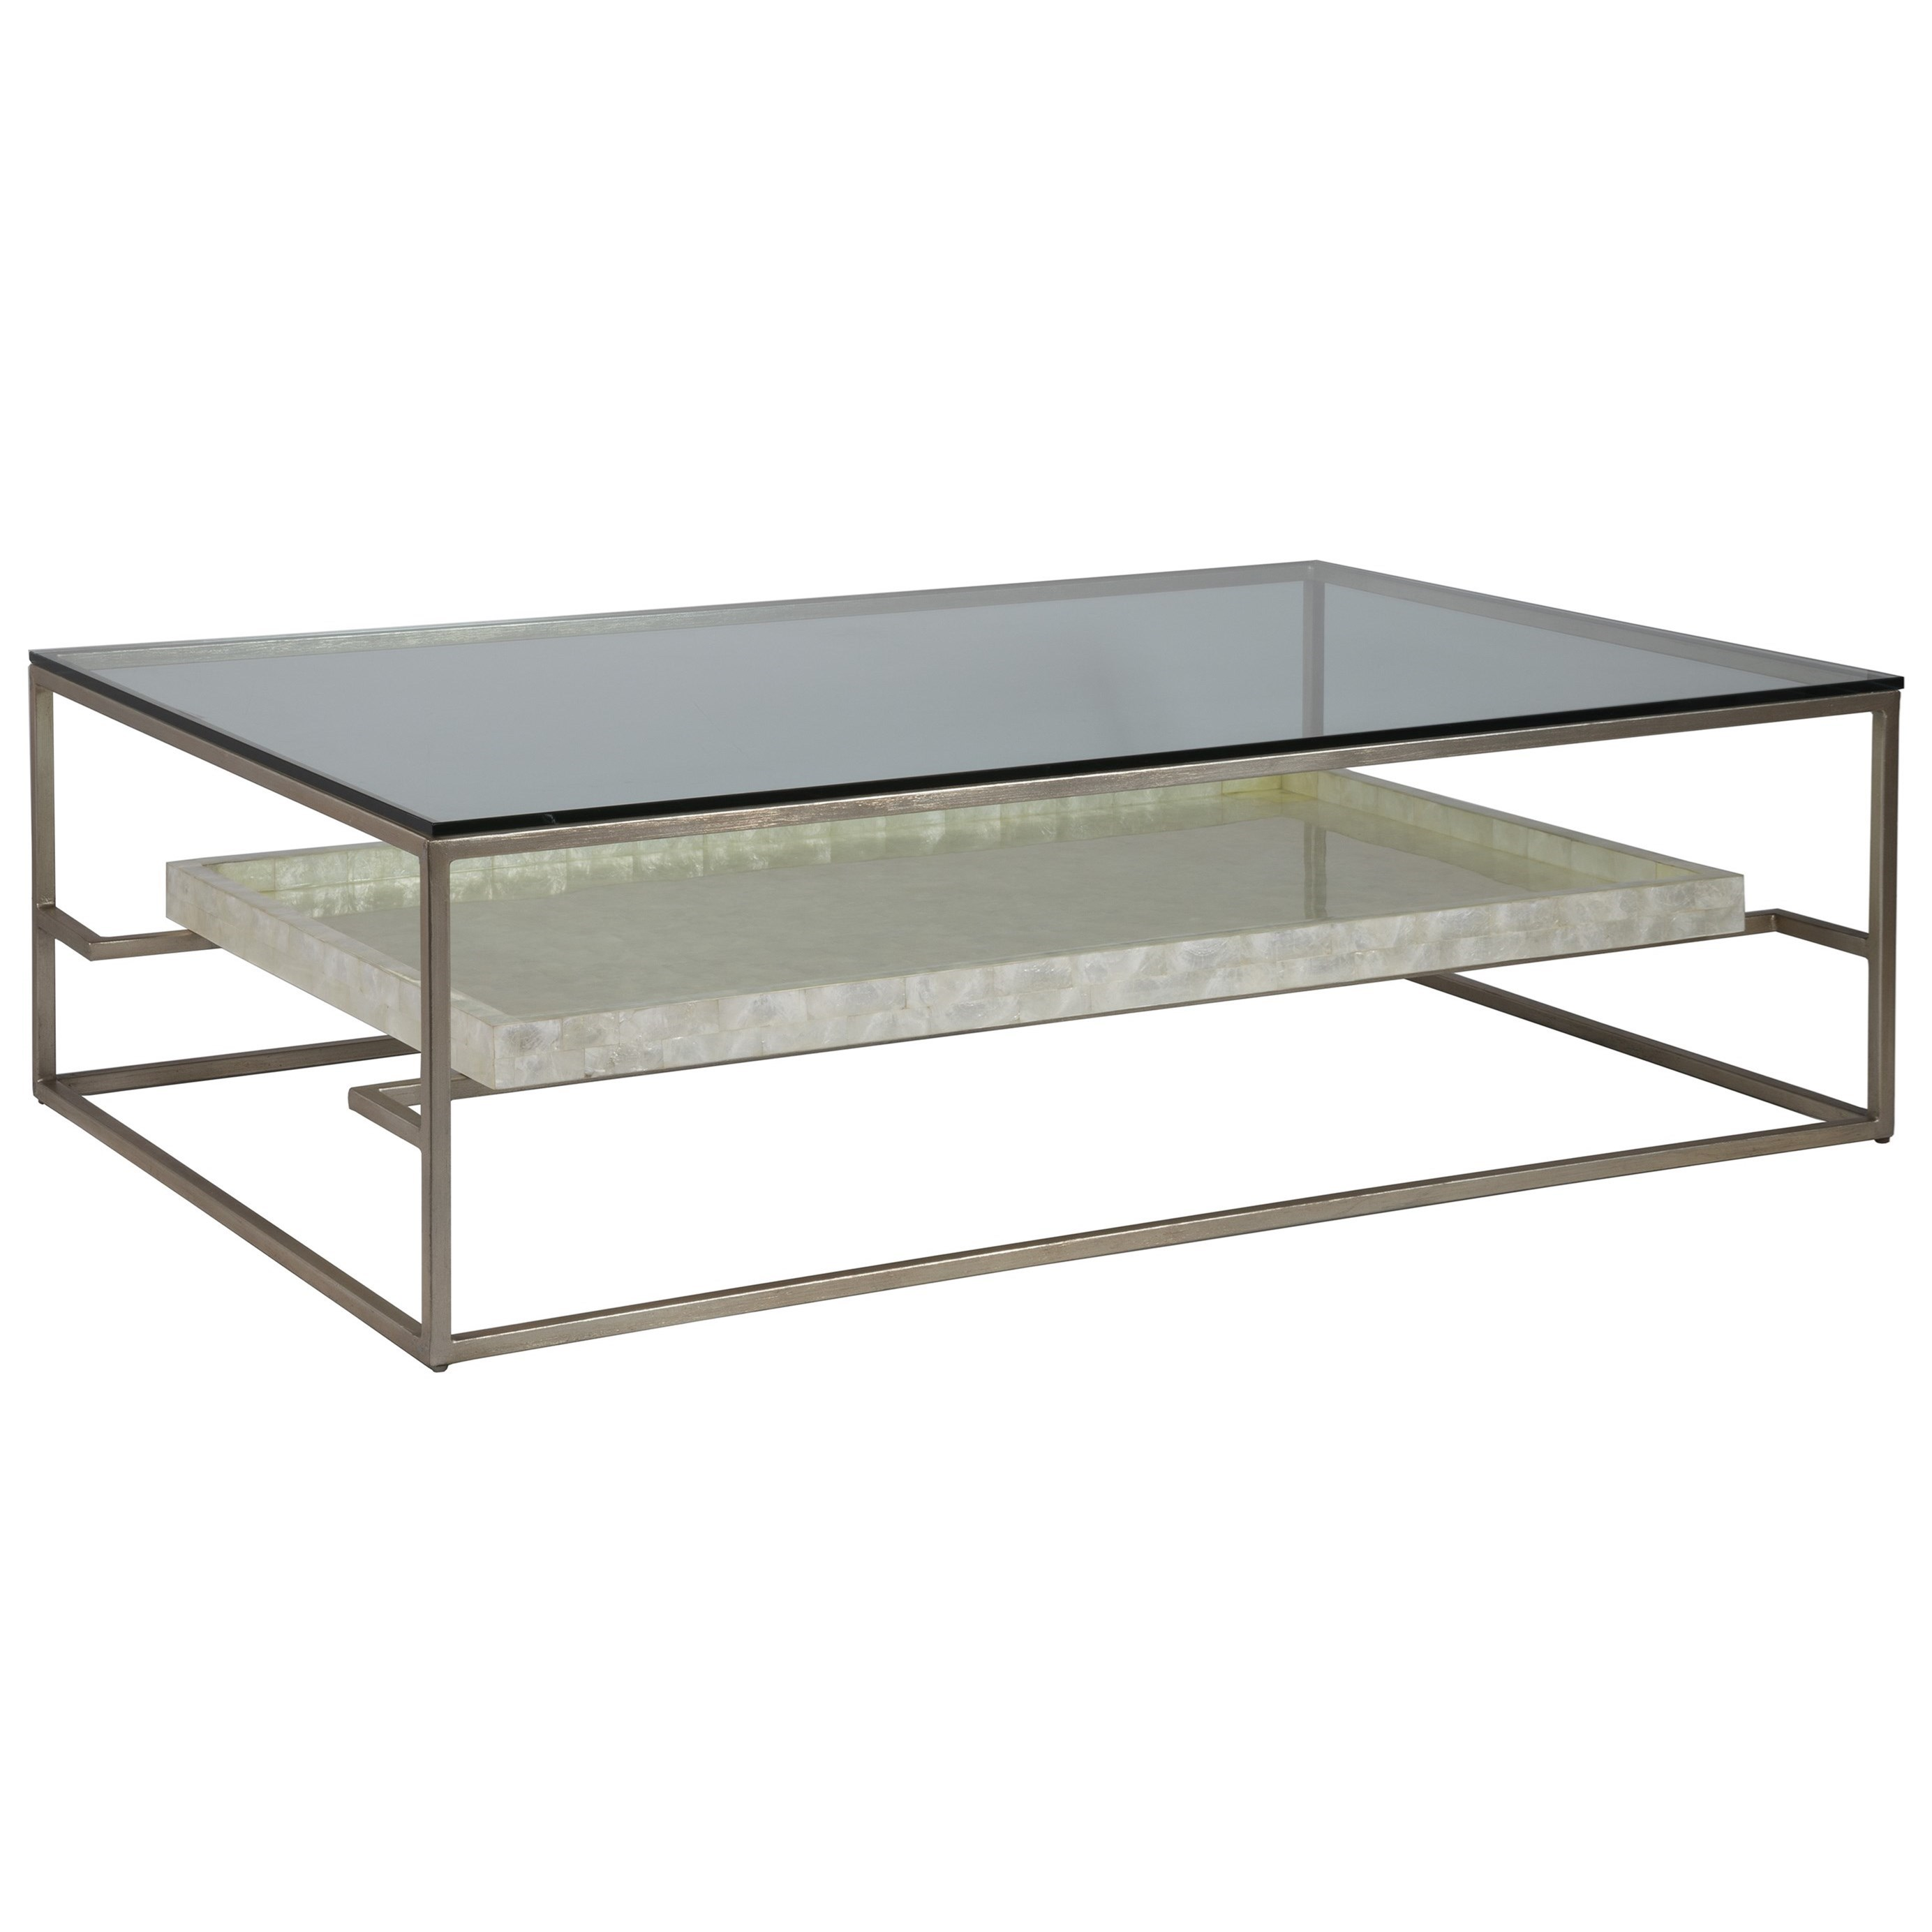 Cumulus Rectangular 60 Inch Cocktail Table by Artistica at Baer's Furniture